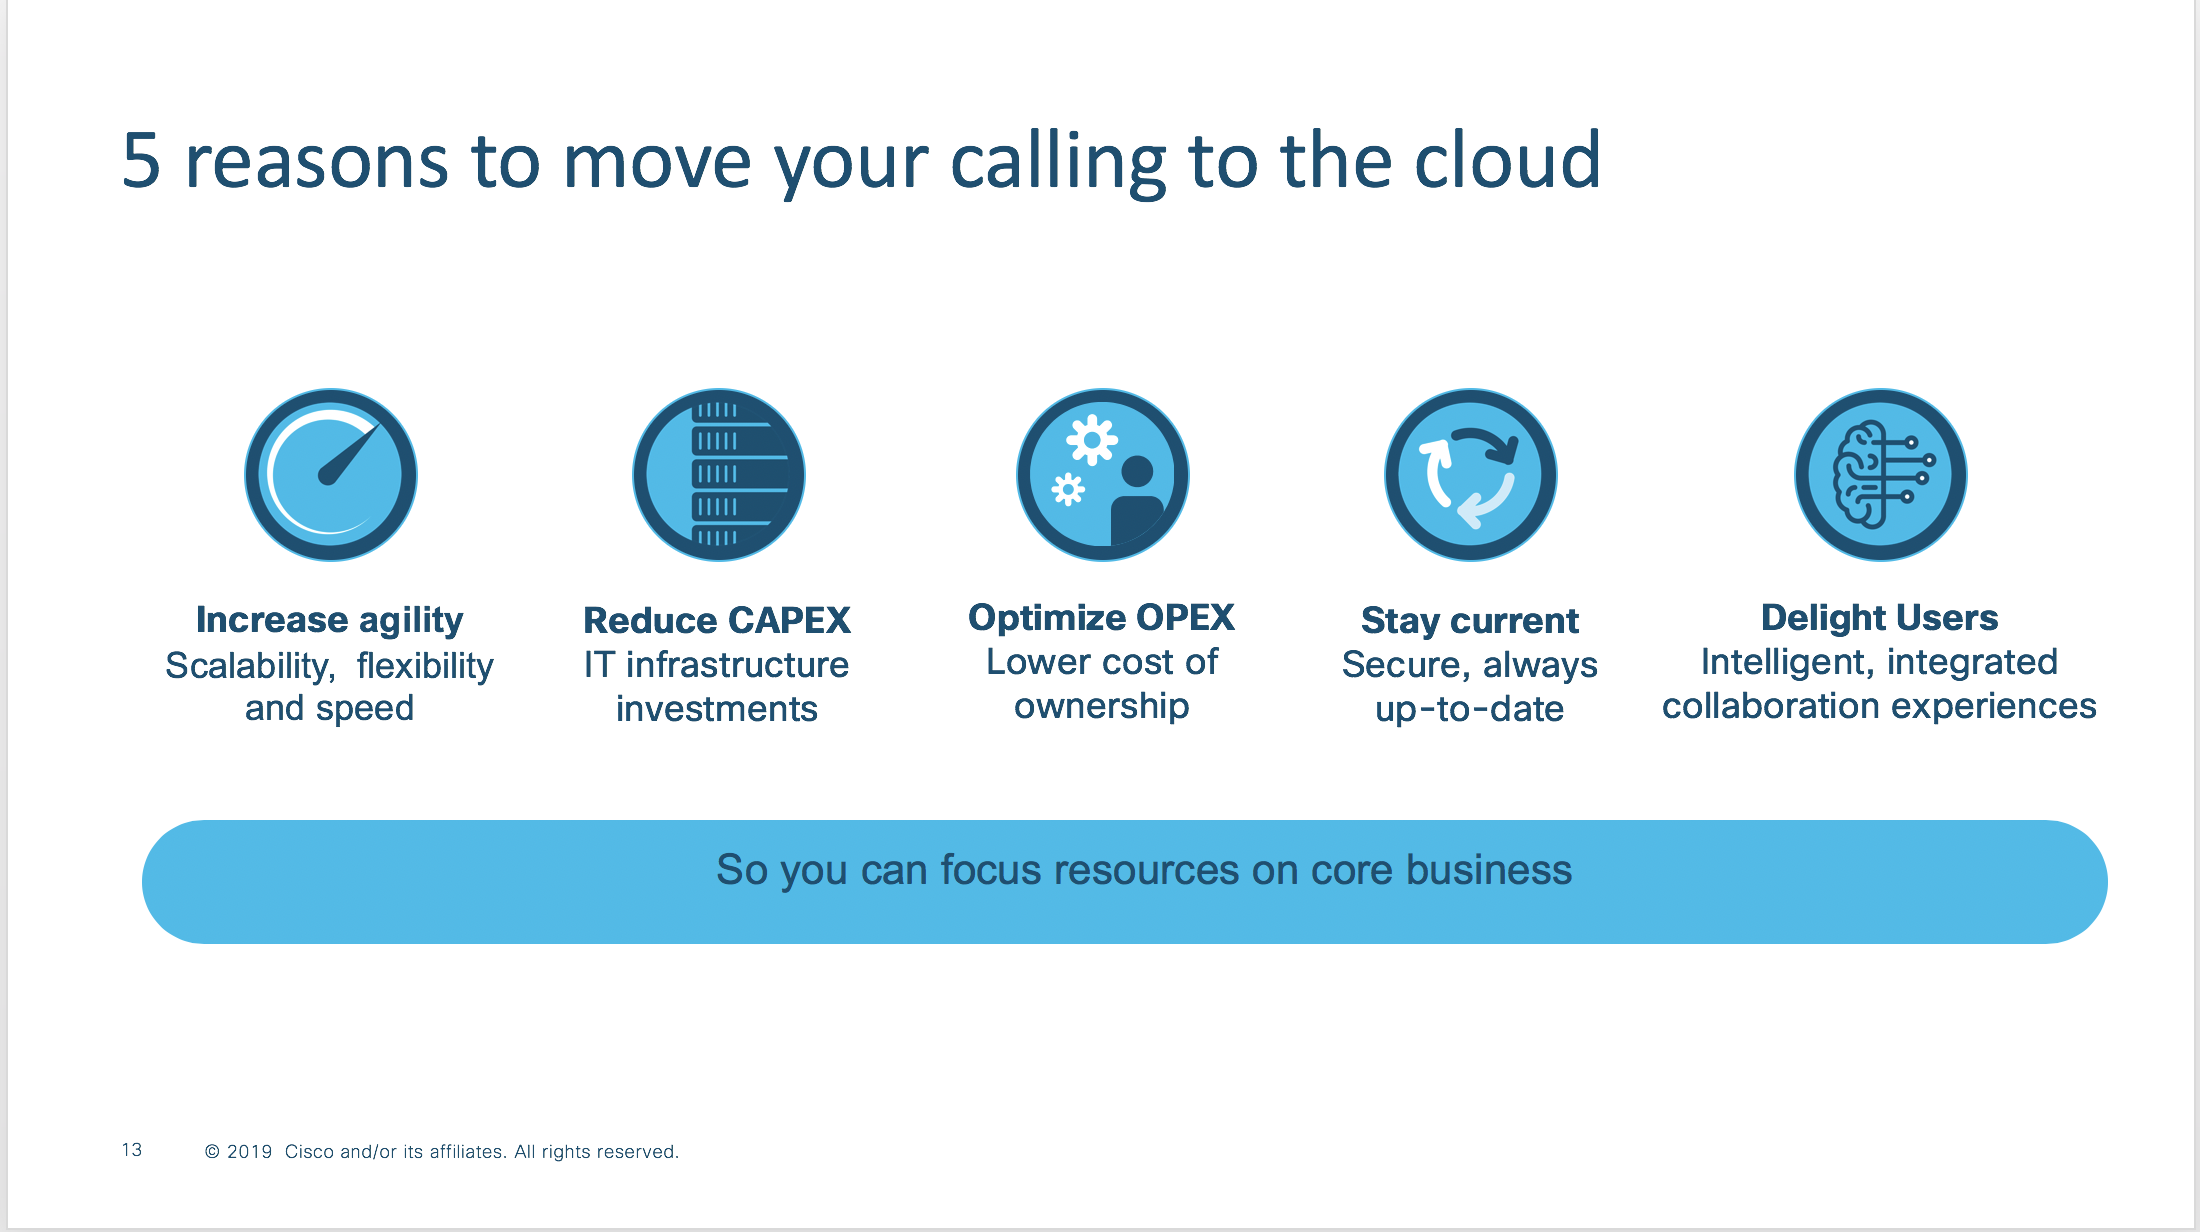 5 Reasons to Move Your Calling to the Cloud